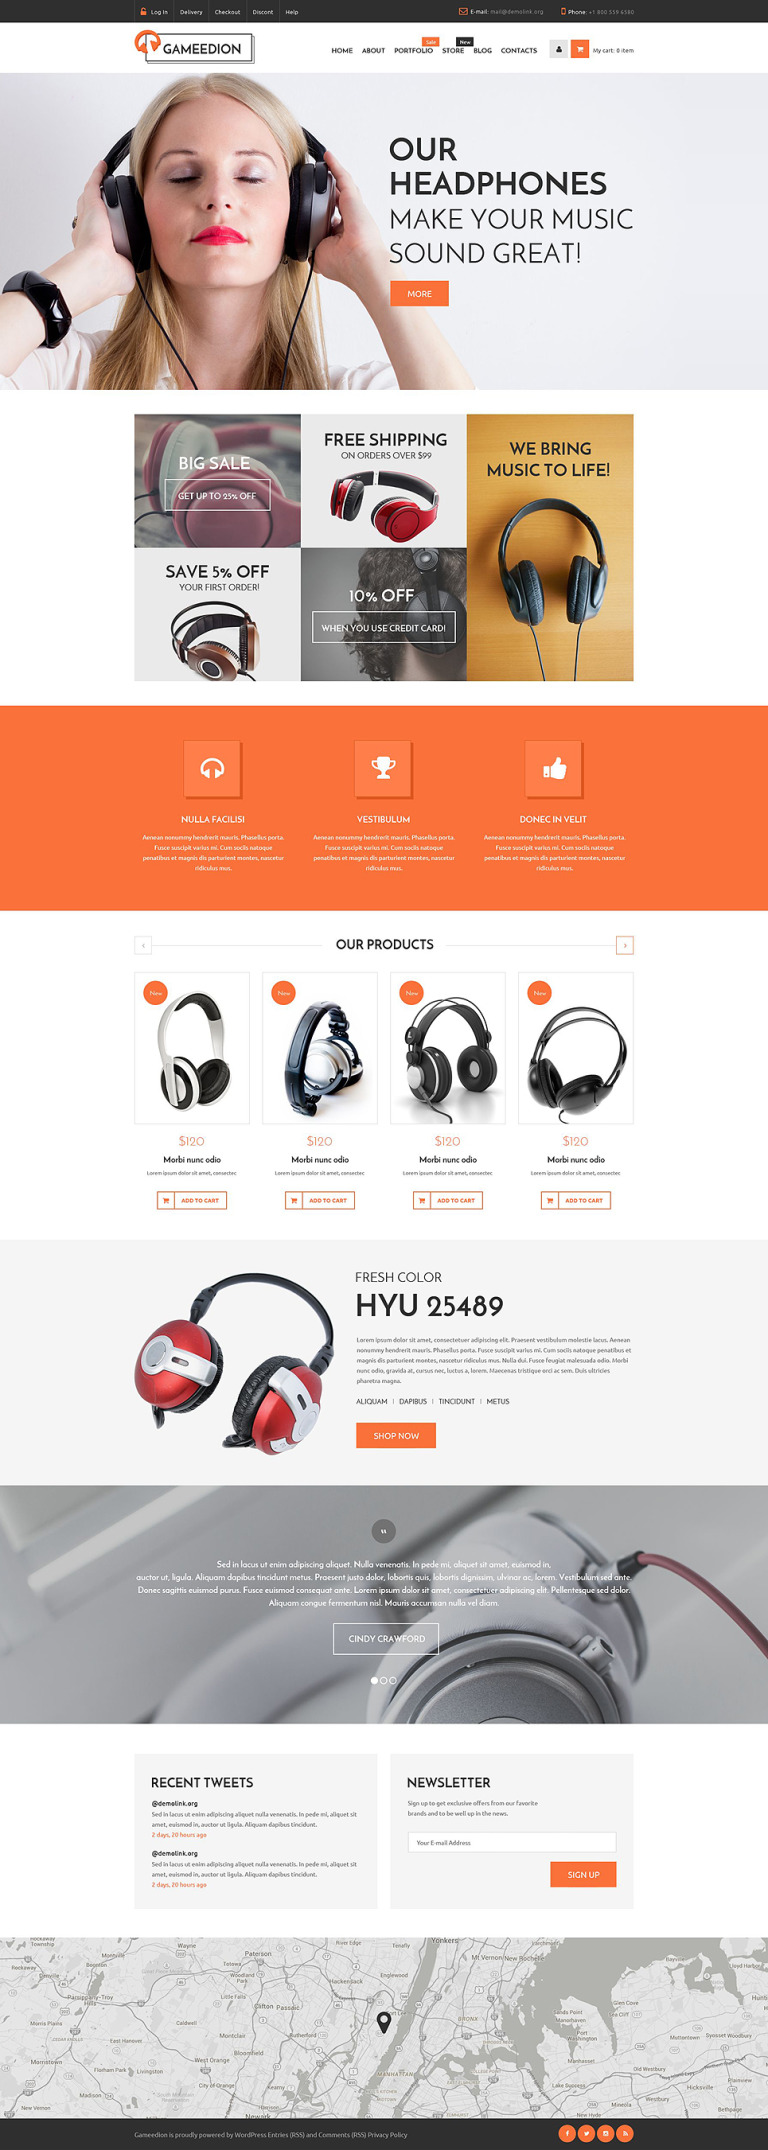 Gameedion WooCommerce Theme New Screenshots BIG